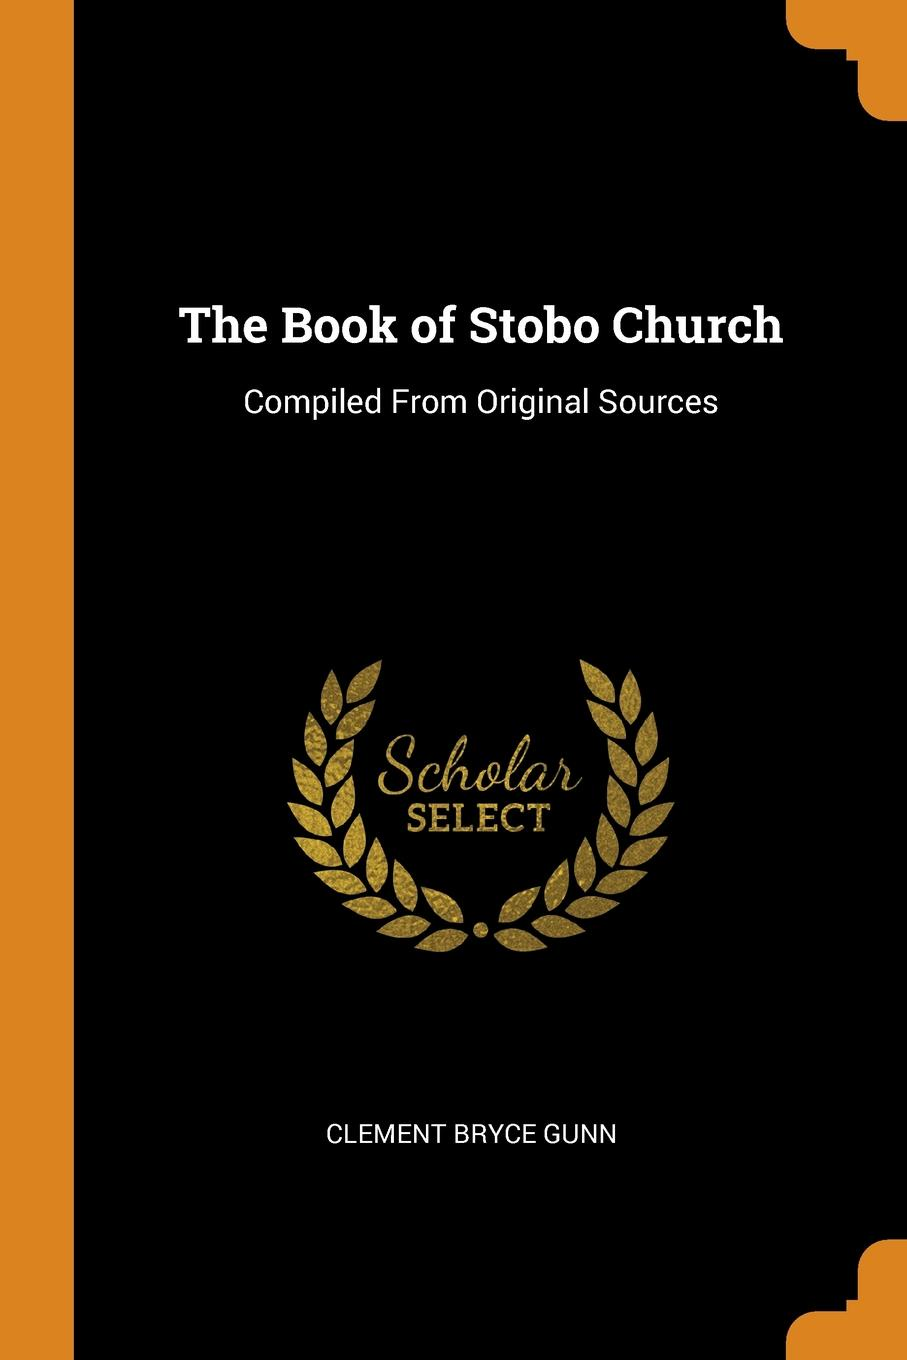 The Book of Stobo Church. Compiled From Original Sources